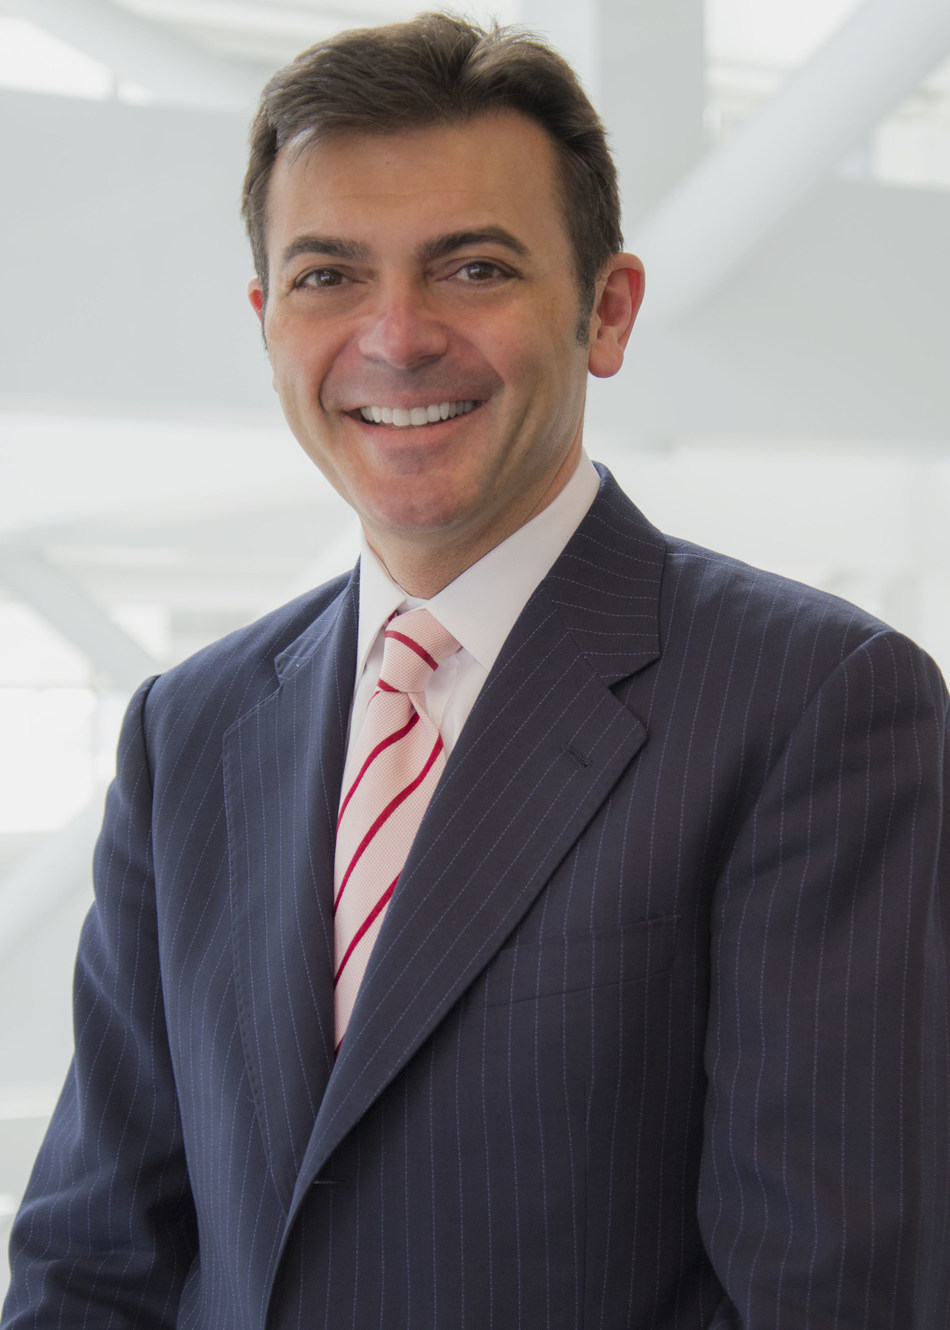 Frank J. La Salla, CEO, Global Structured Products/Alternative Investment Services